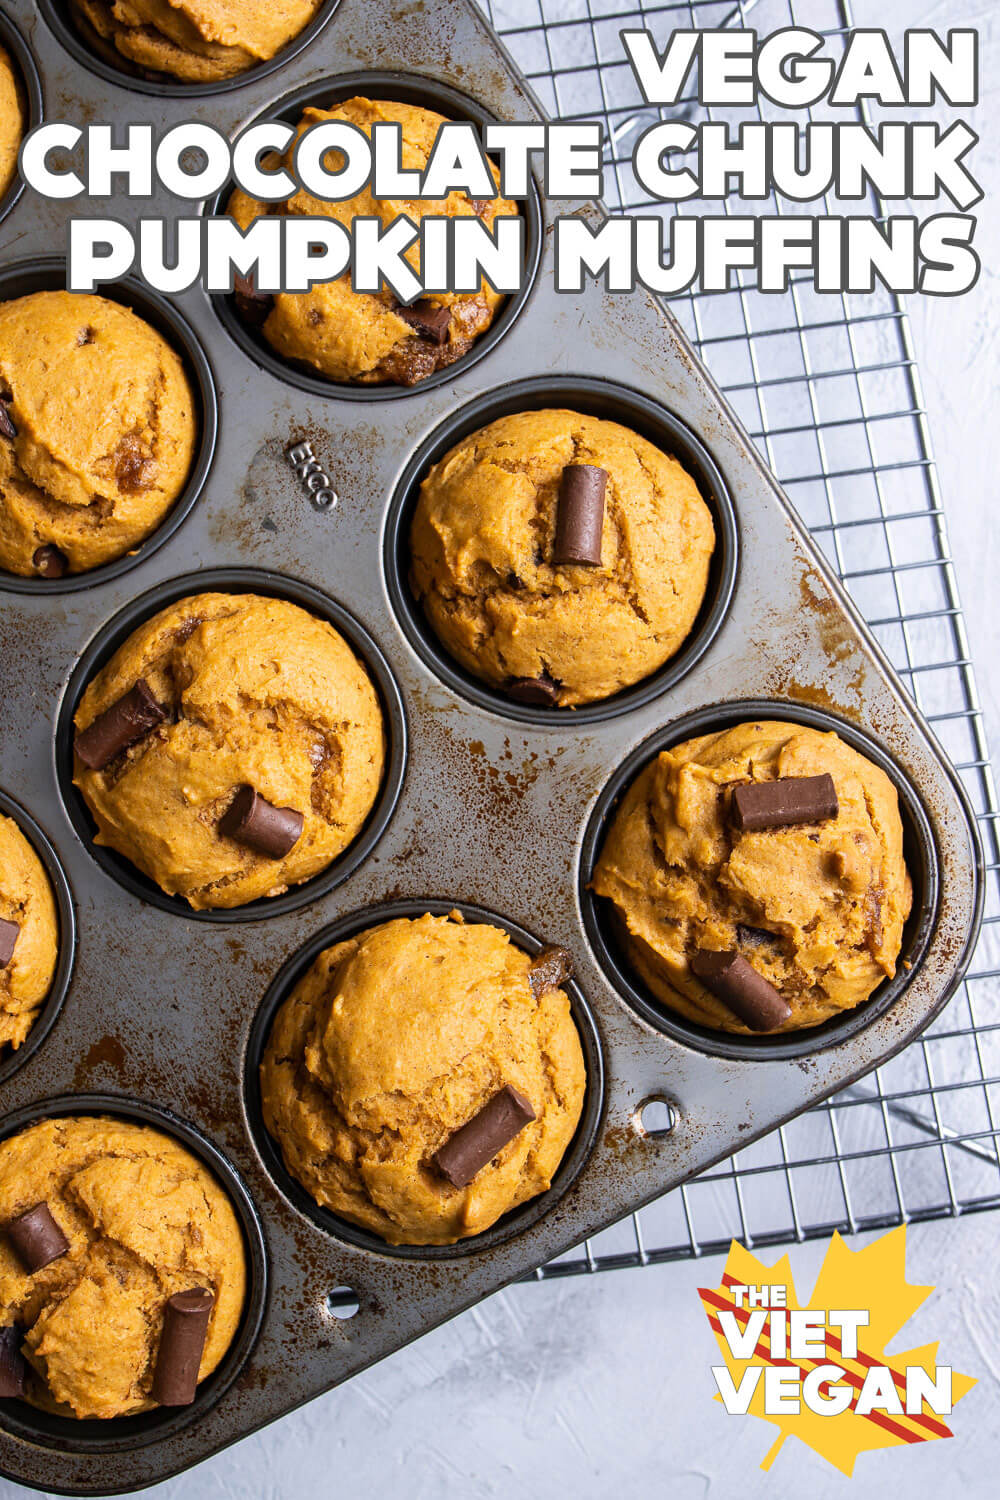 baked muffins in a baking pan on a cooling rack, on a white surface